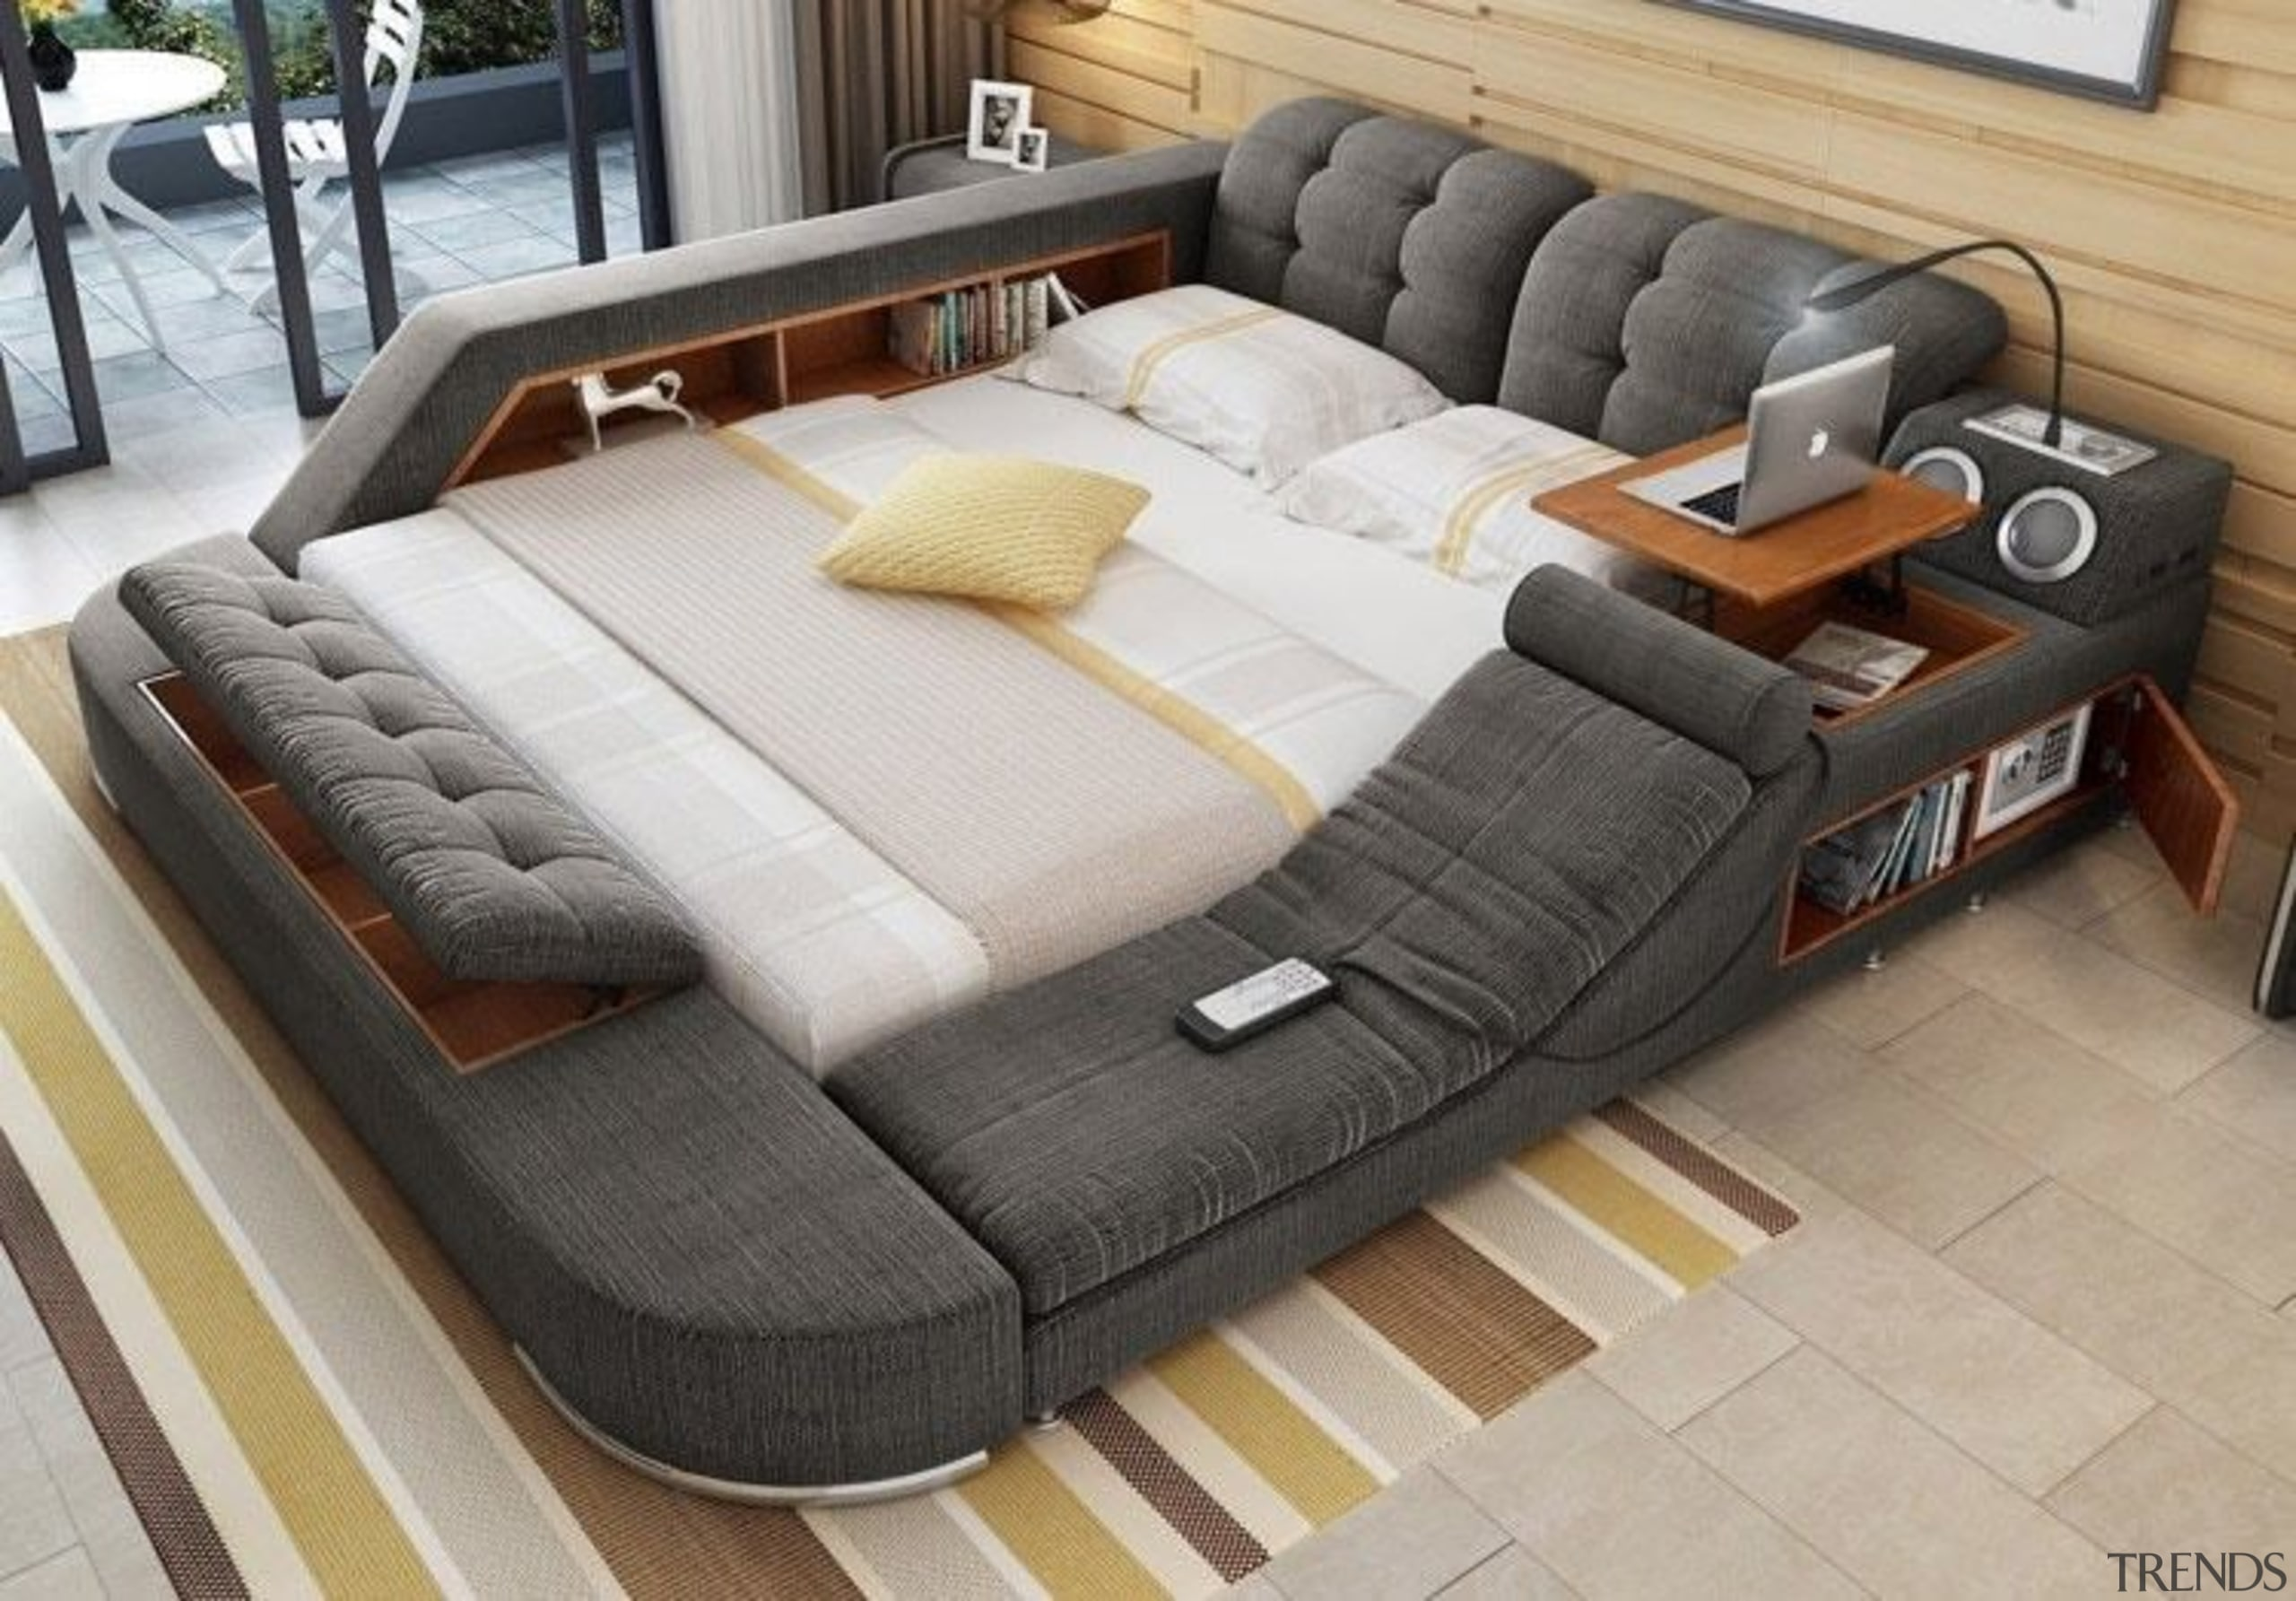 The perfect bed for people who never want bed, bed frame, couch, floor, flooring, furniture, mattress, product, product design, gray